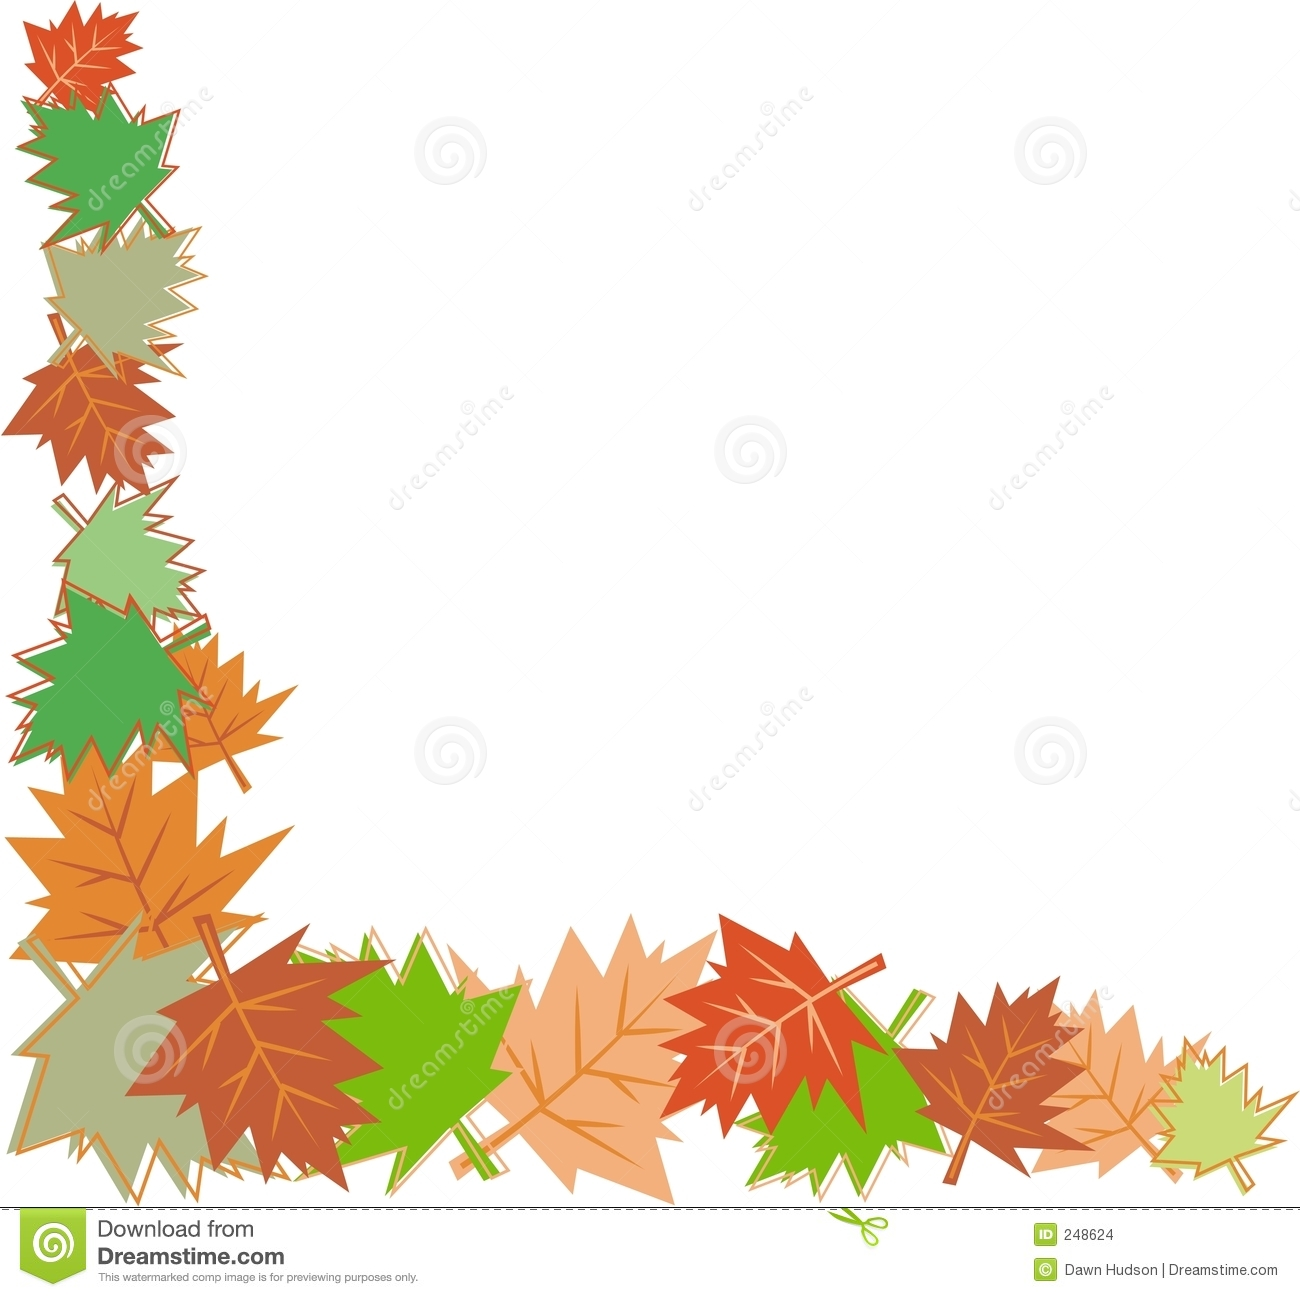 Thanksgiving Leaf Border Clip Art | The Art Mad Wallpapers